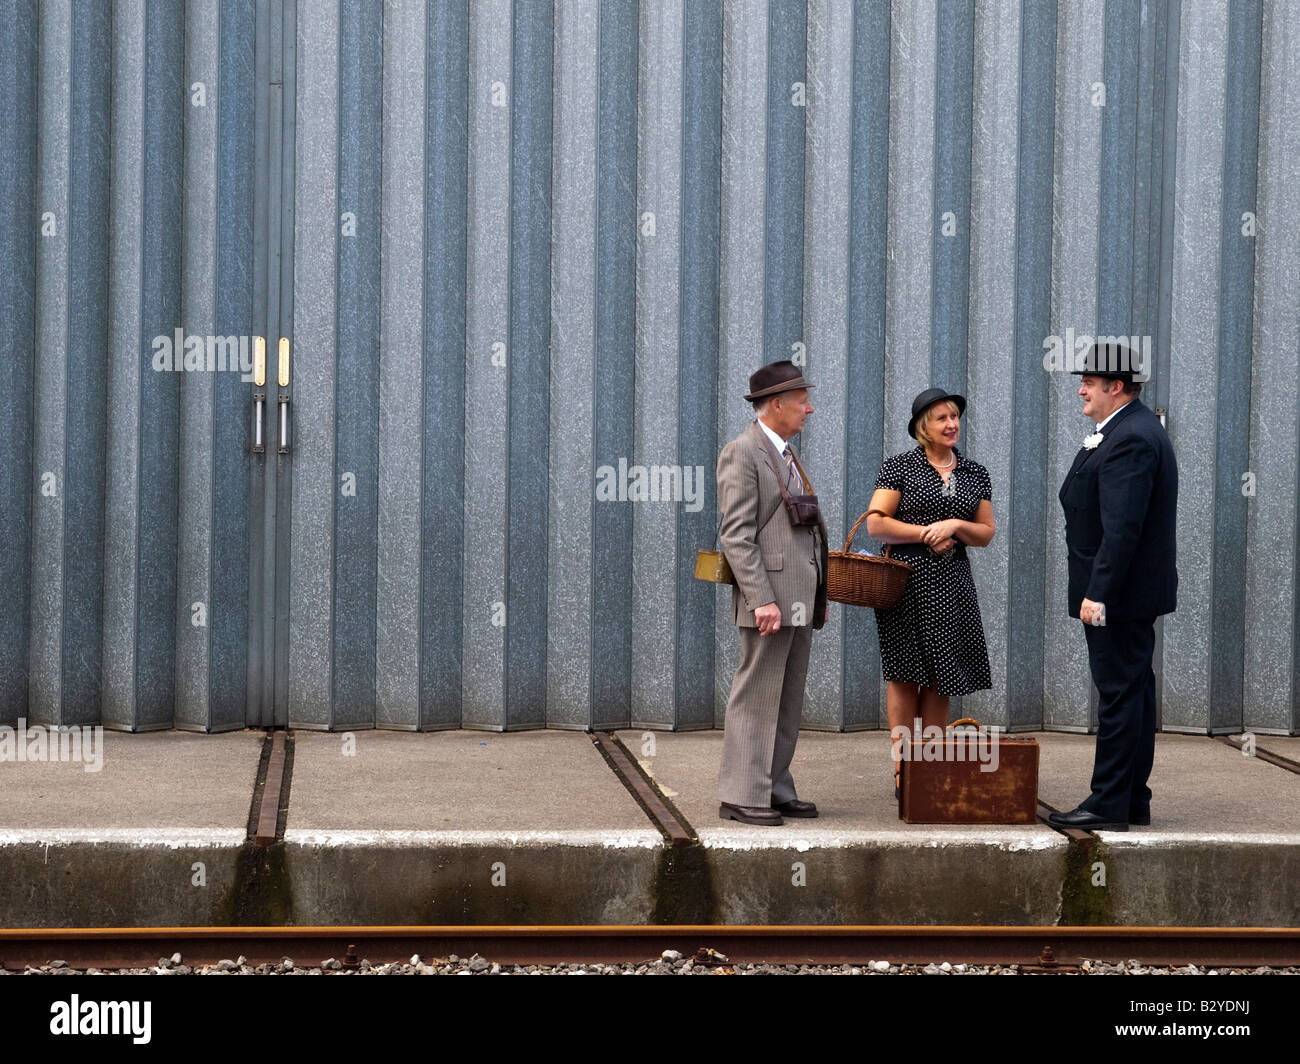 Long wait for the train. - Stock Image